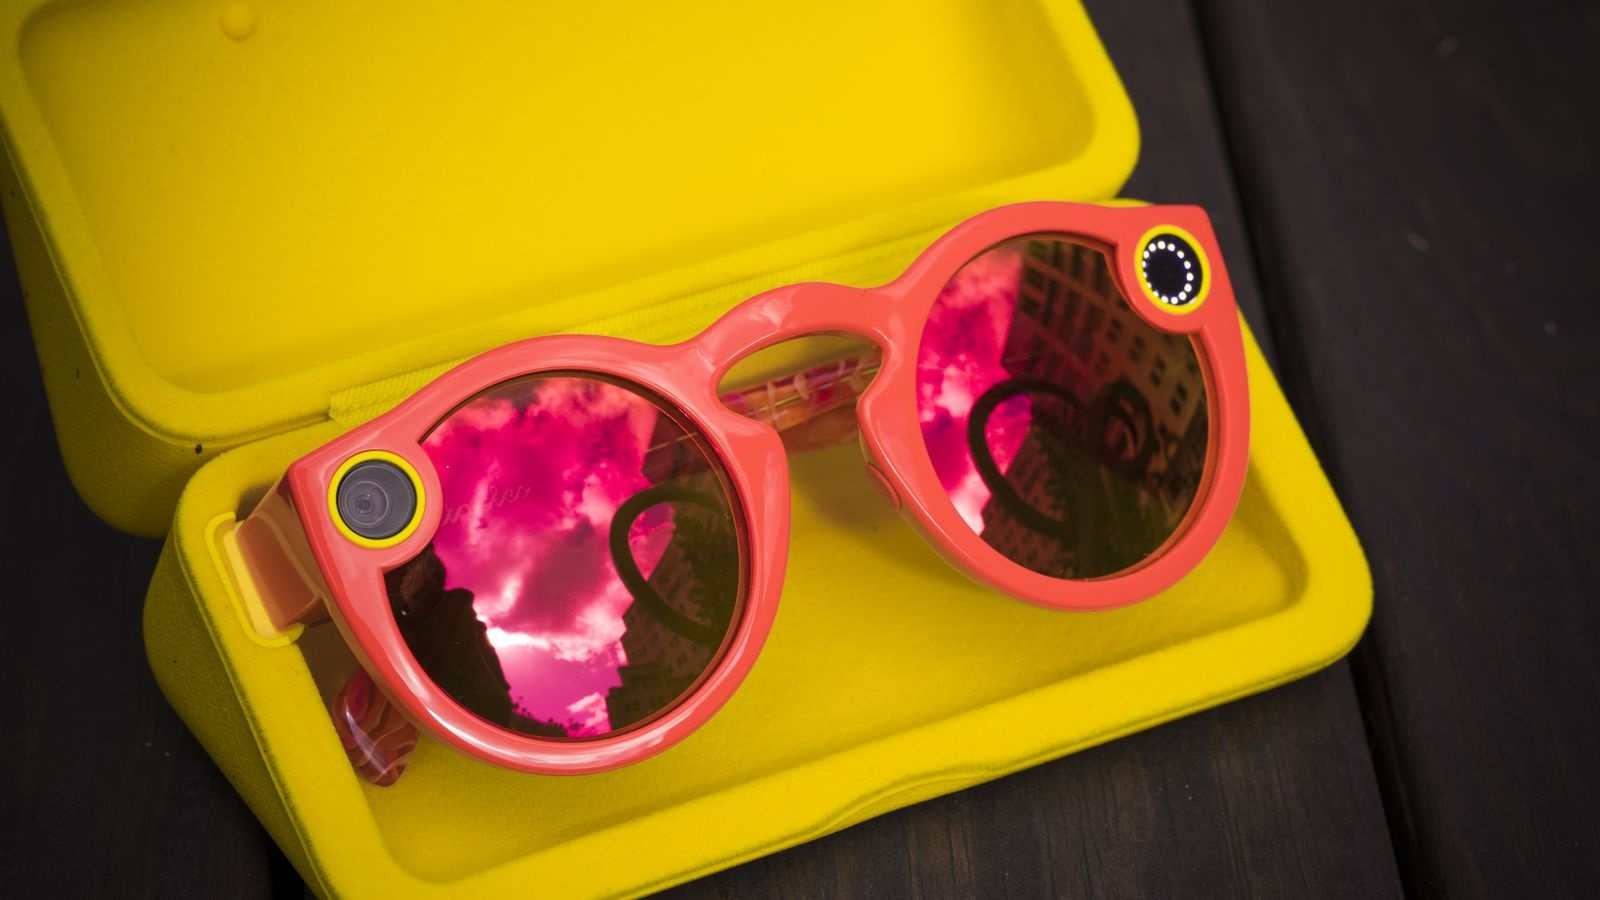 snapchat-spectacles-case-6275